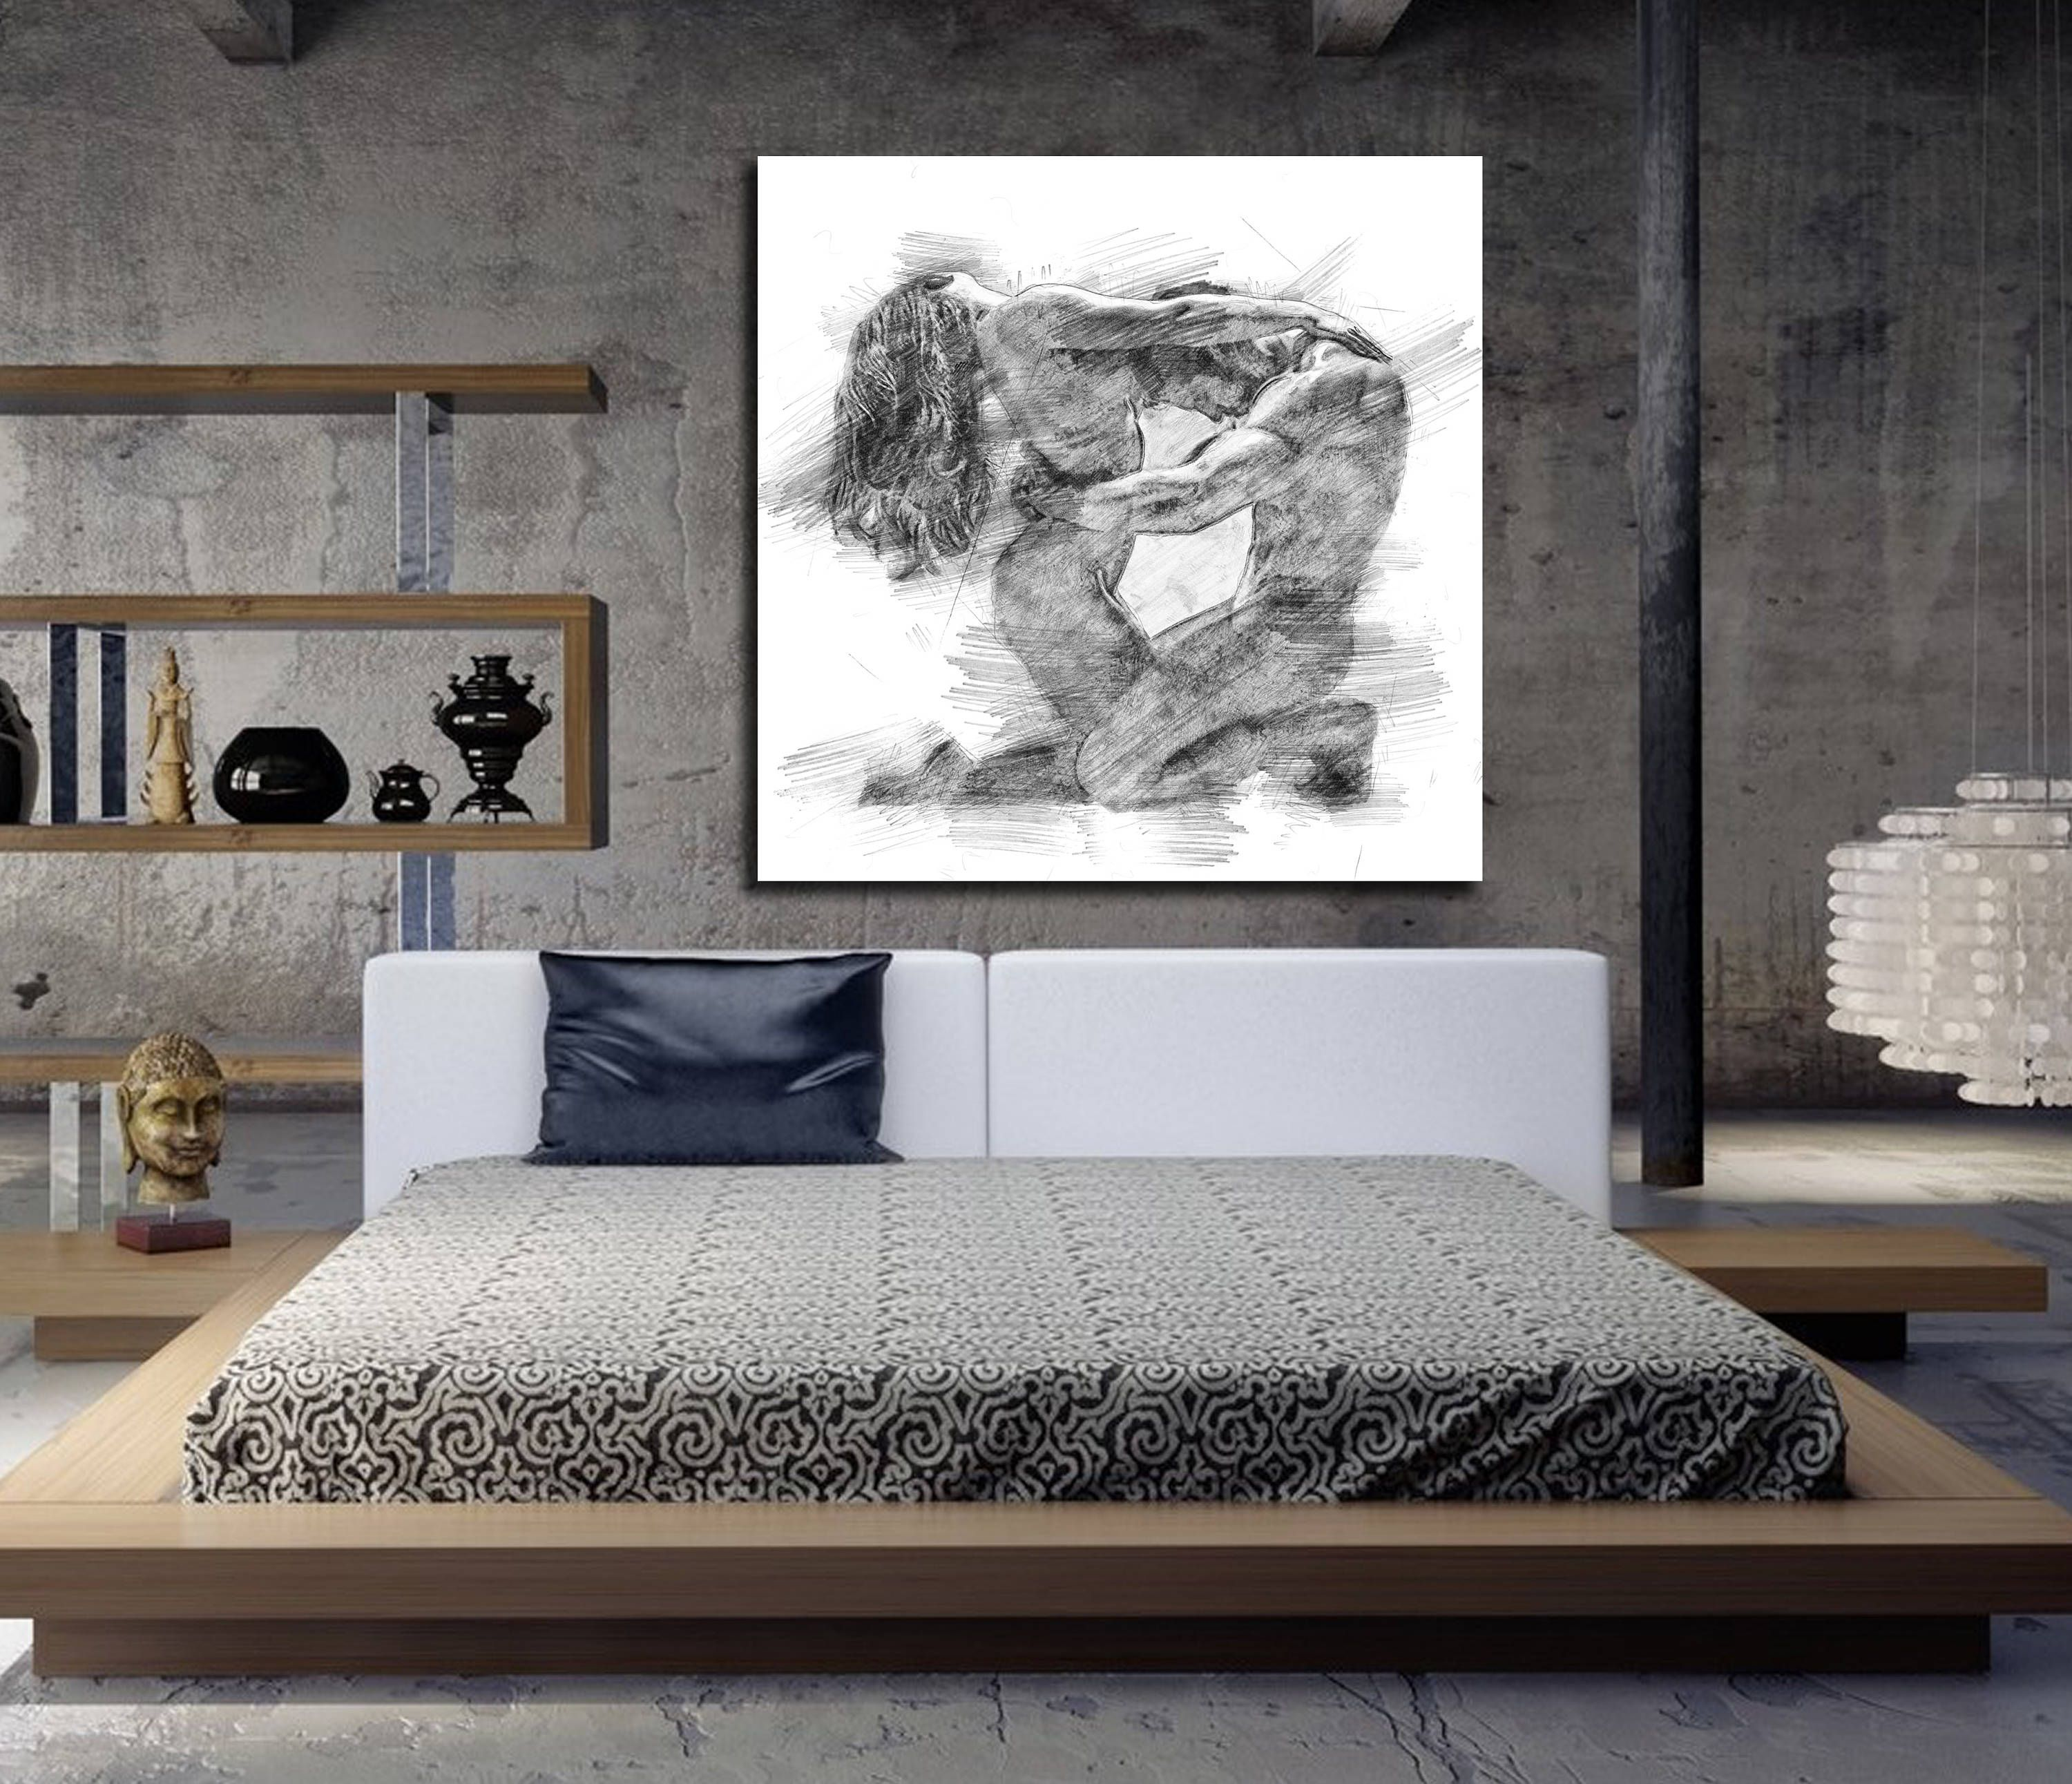 CANVAS ART His  Hers Bedroom Wall Art Abstract Art Print